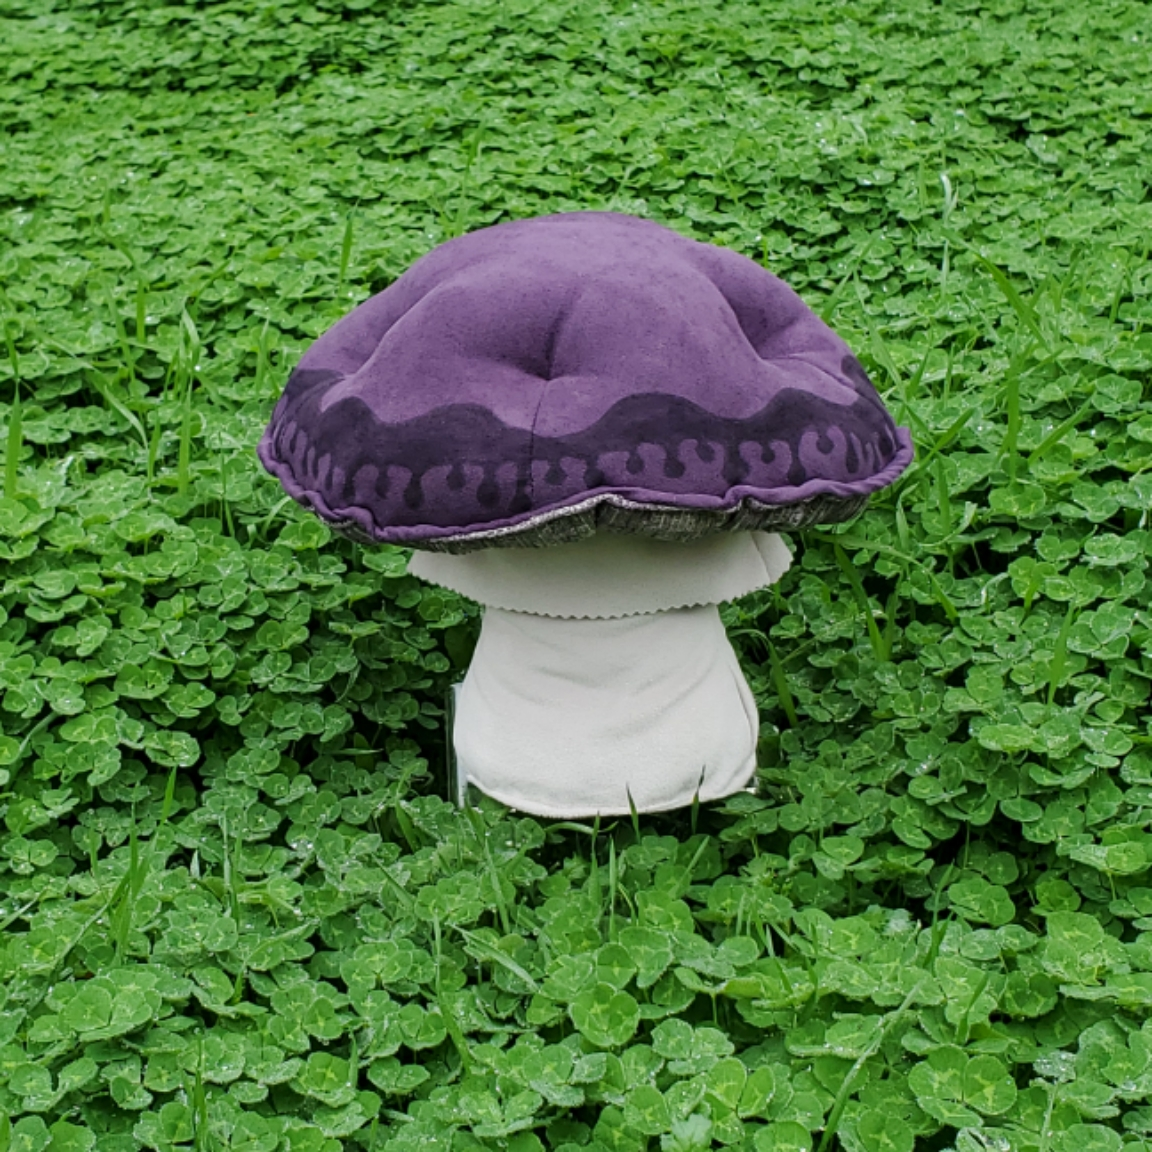 Cloverfield mushroom purple ink drop